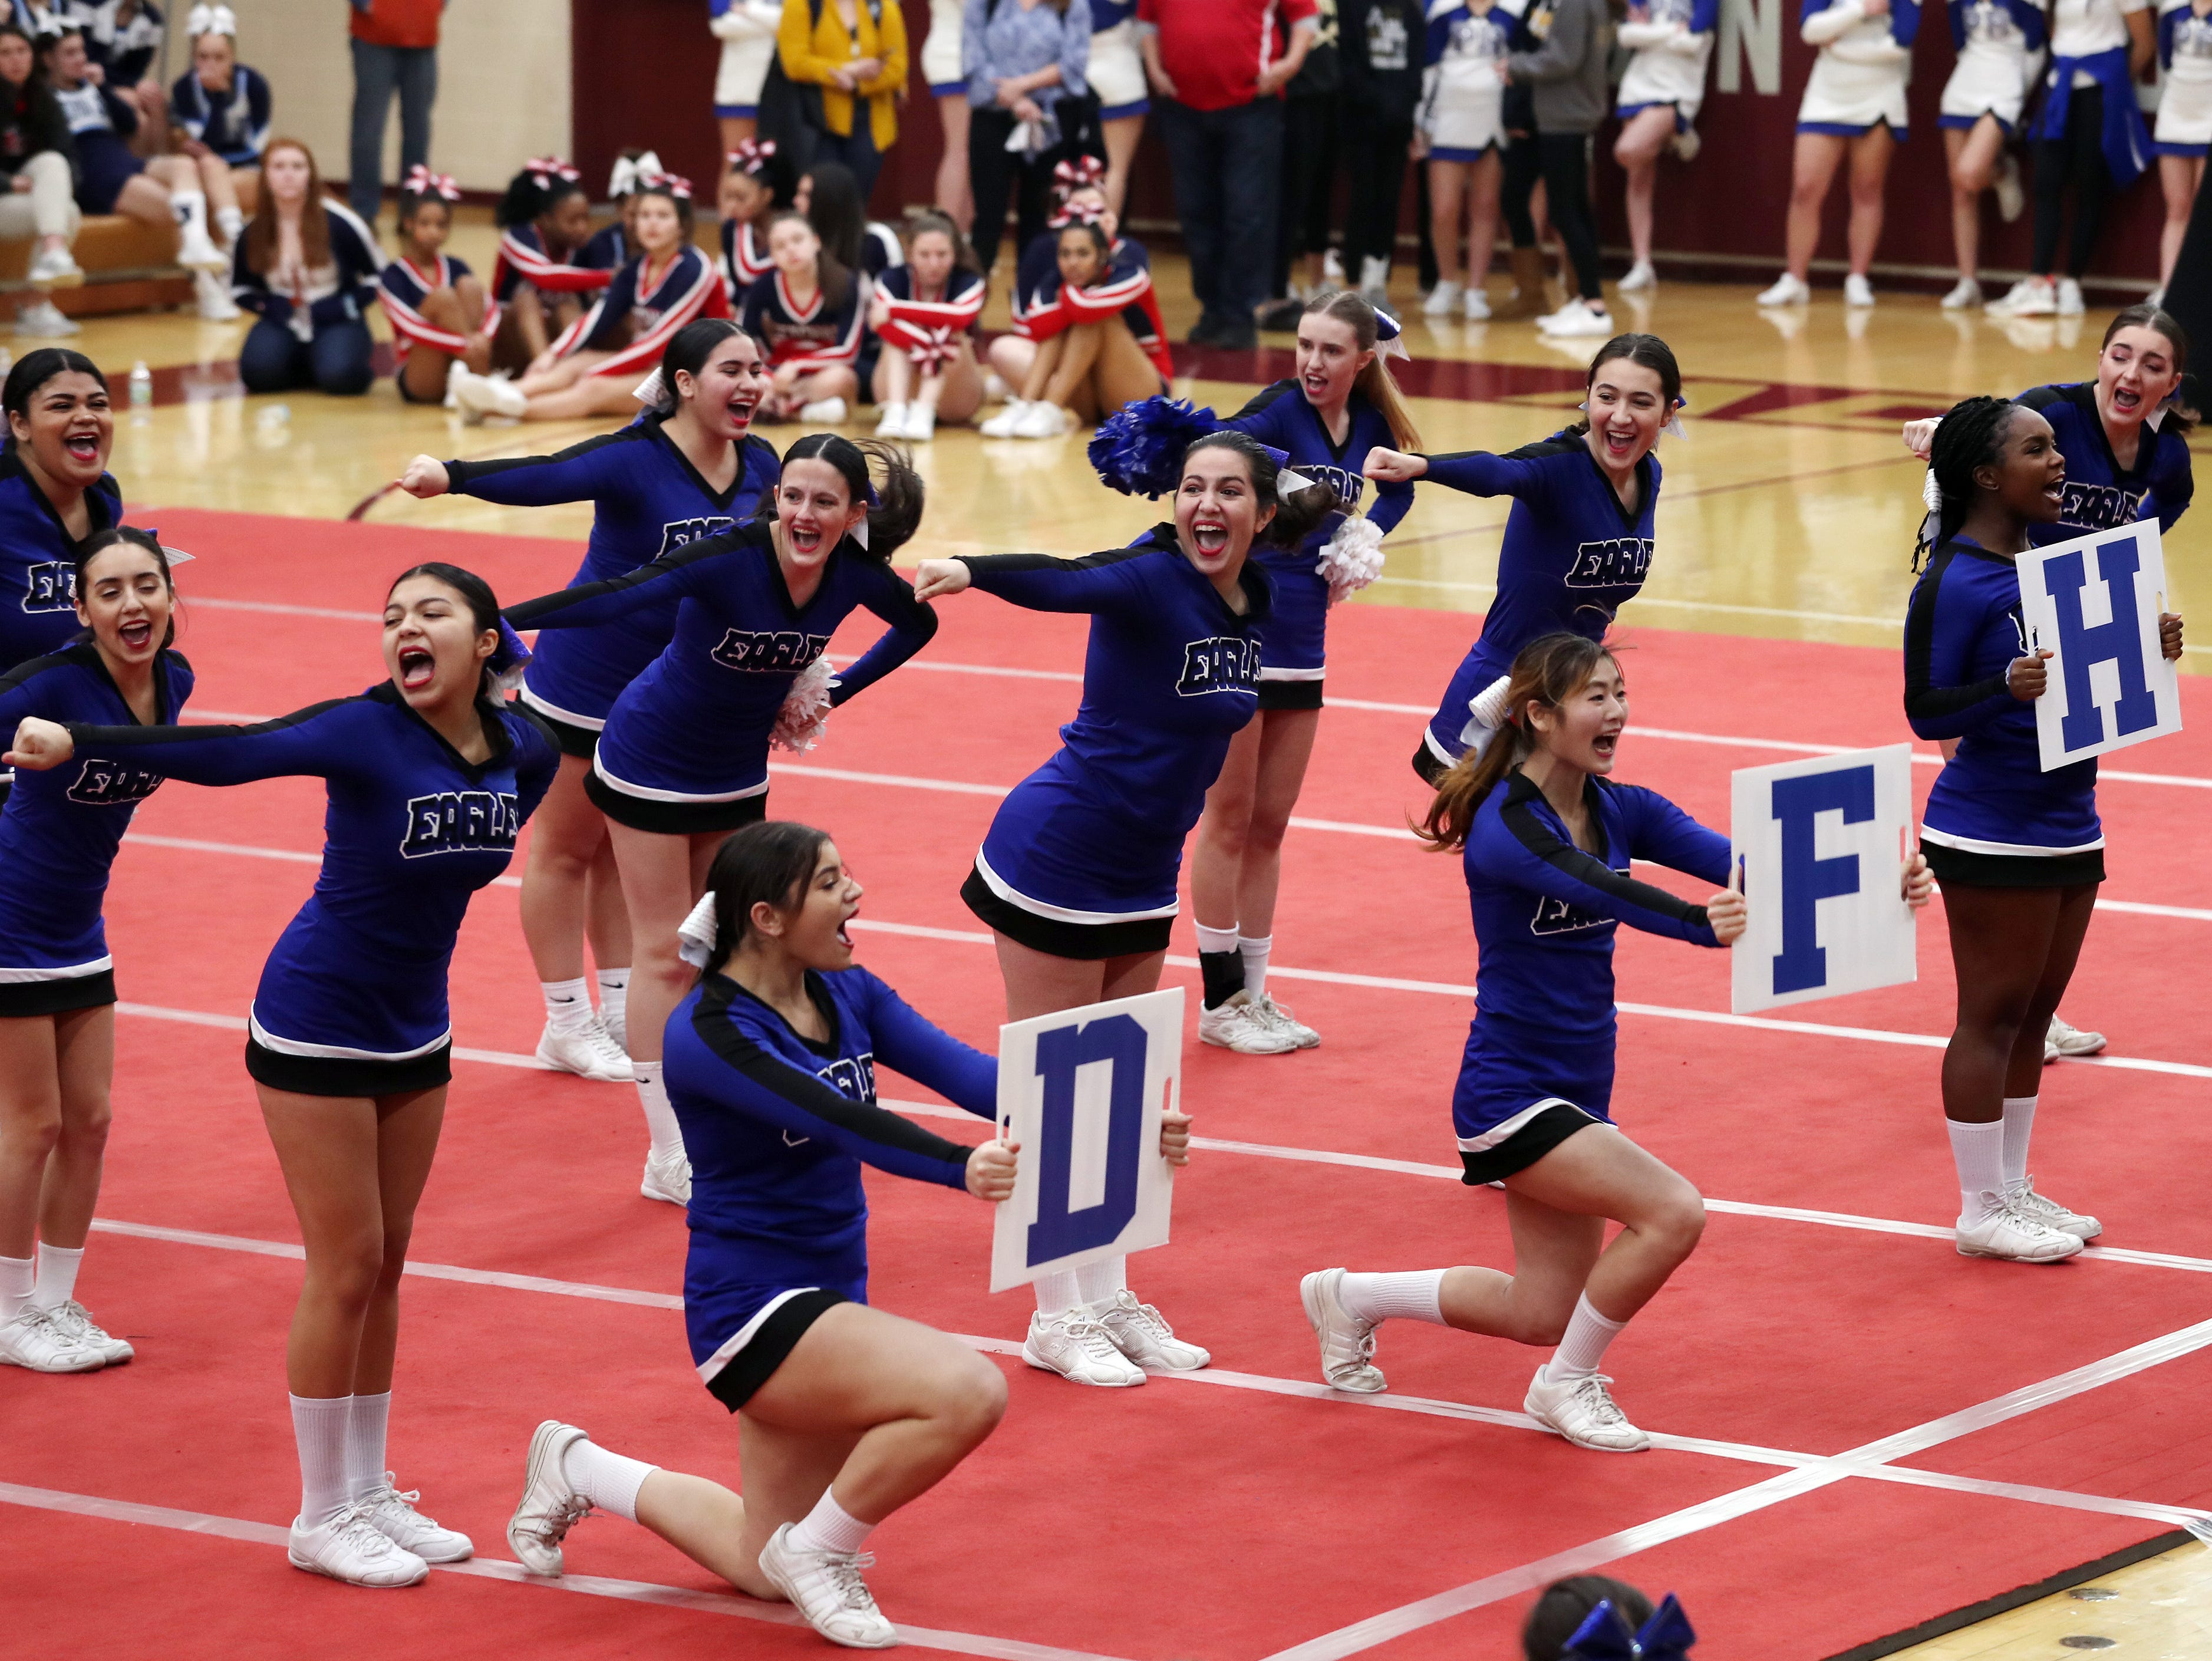 Dobbs Ferry High School competes during the Section 1 cheerleading championships at Arlington High School in Freedom Plains Feb. 16, 2019.